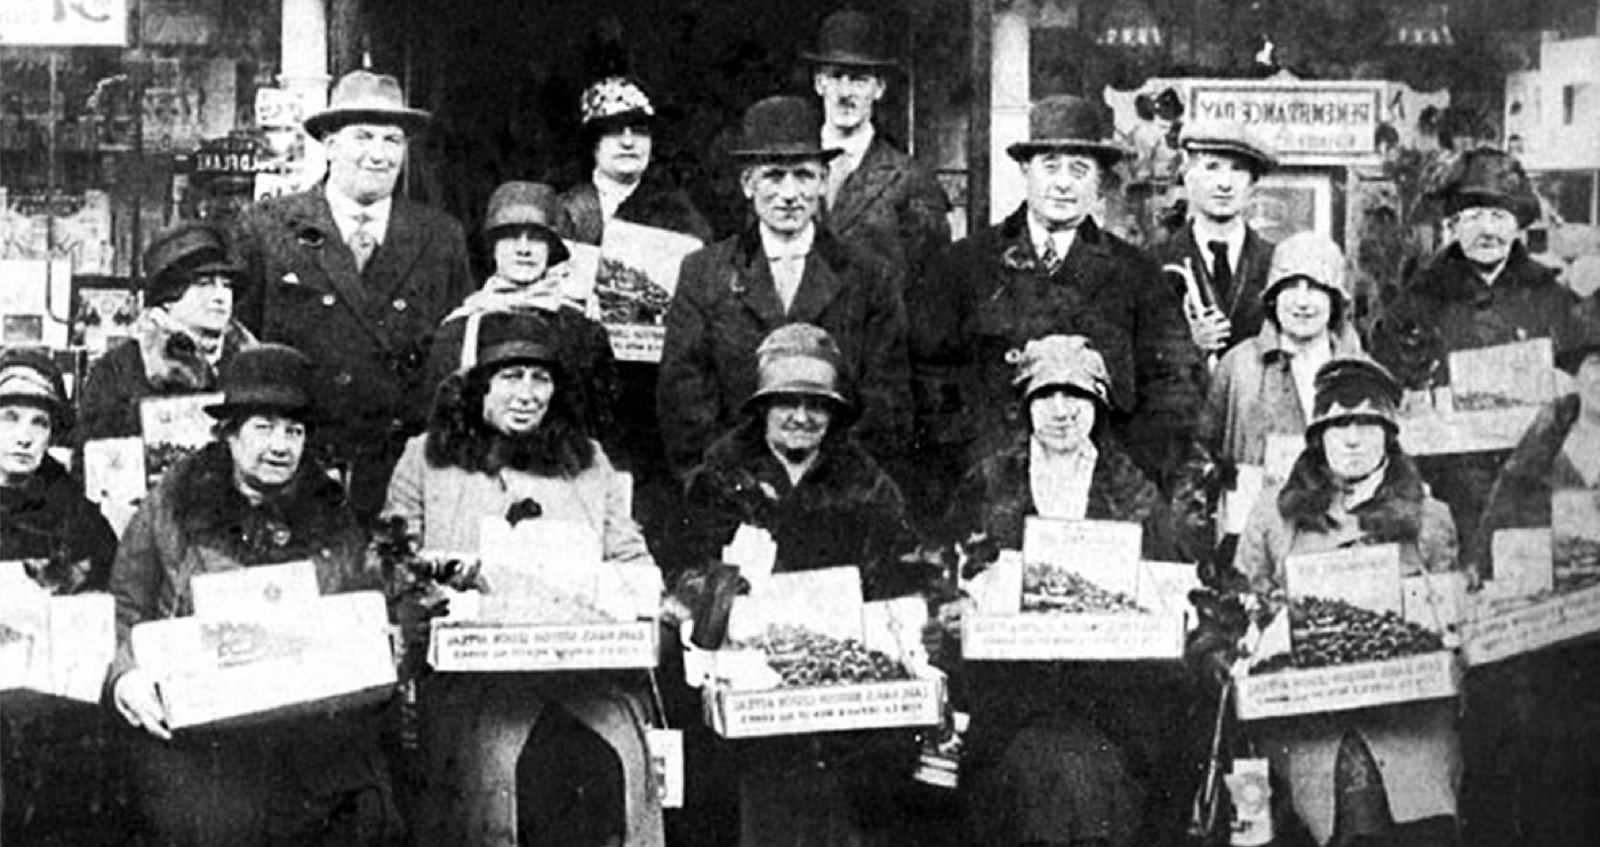 Black and white photograph of early poppy sellers